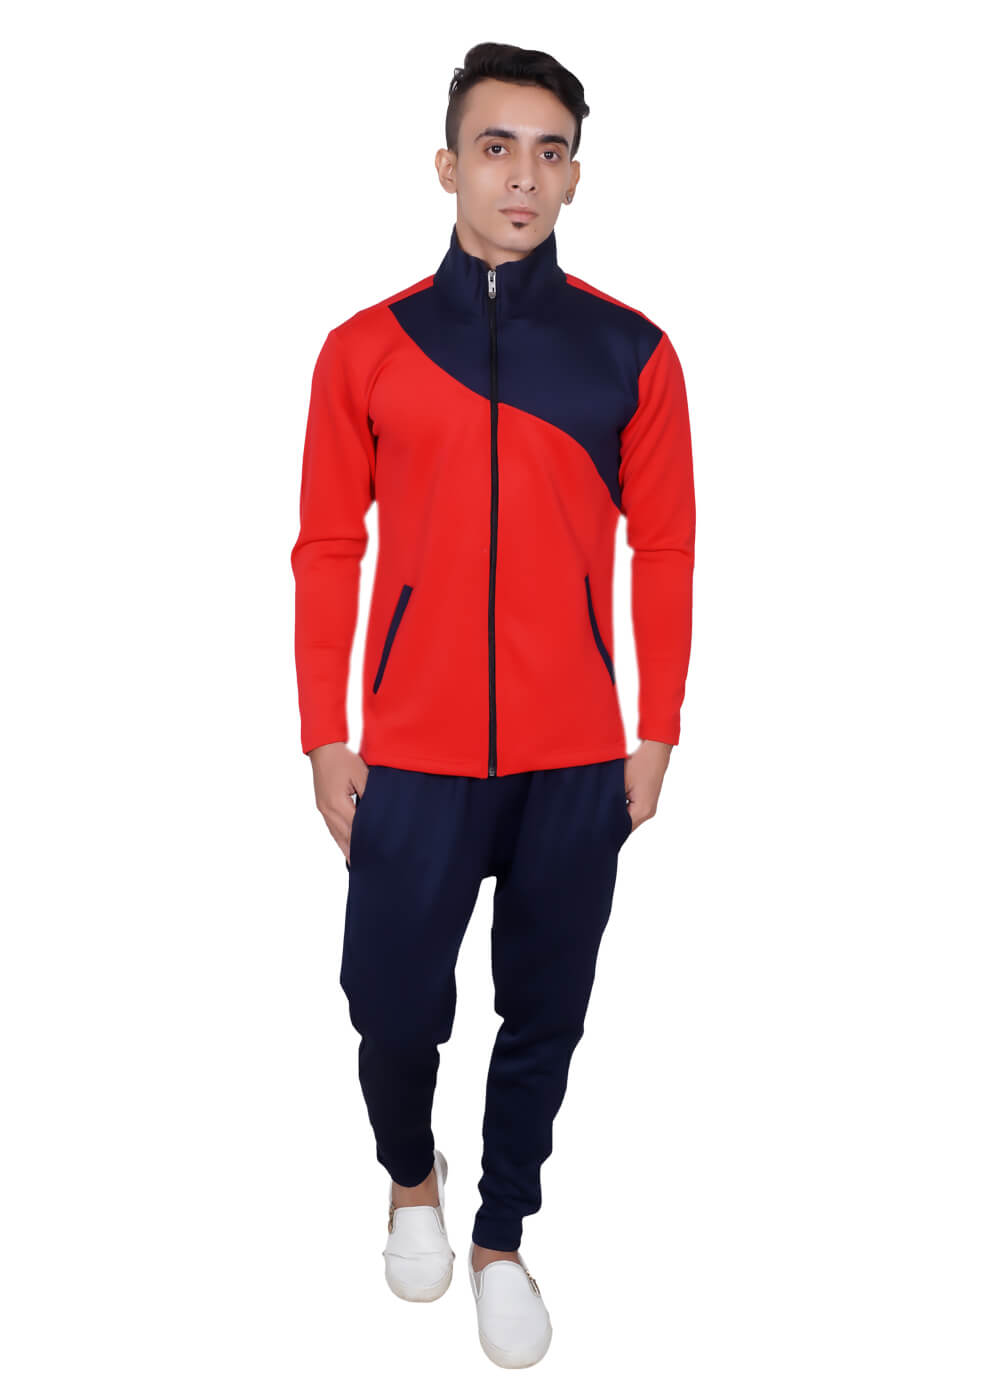 Cheap Tracksuits Manufacturers in Croatia